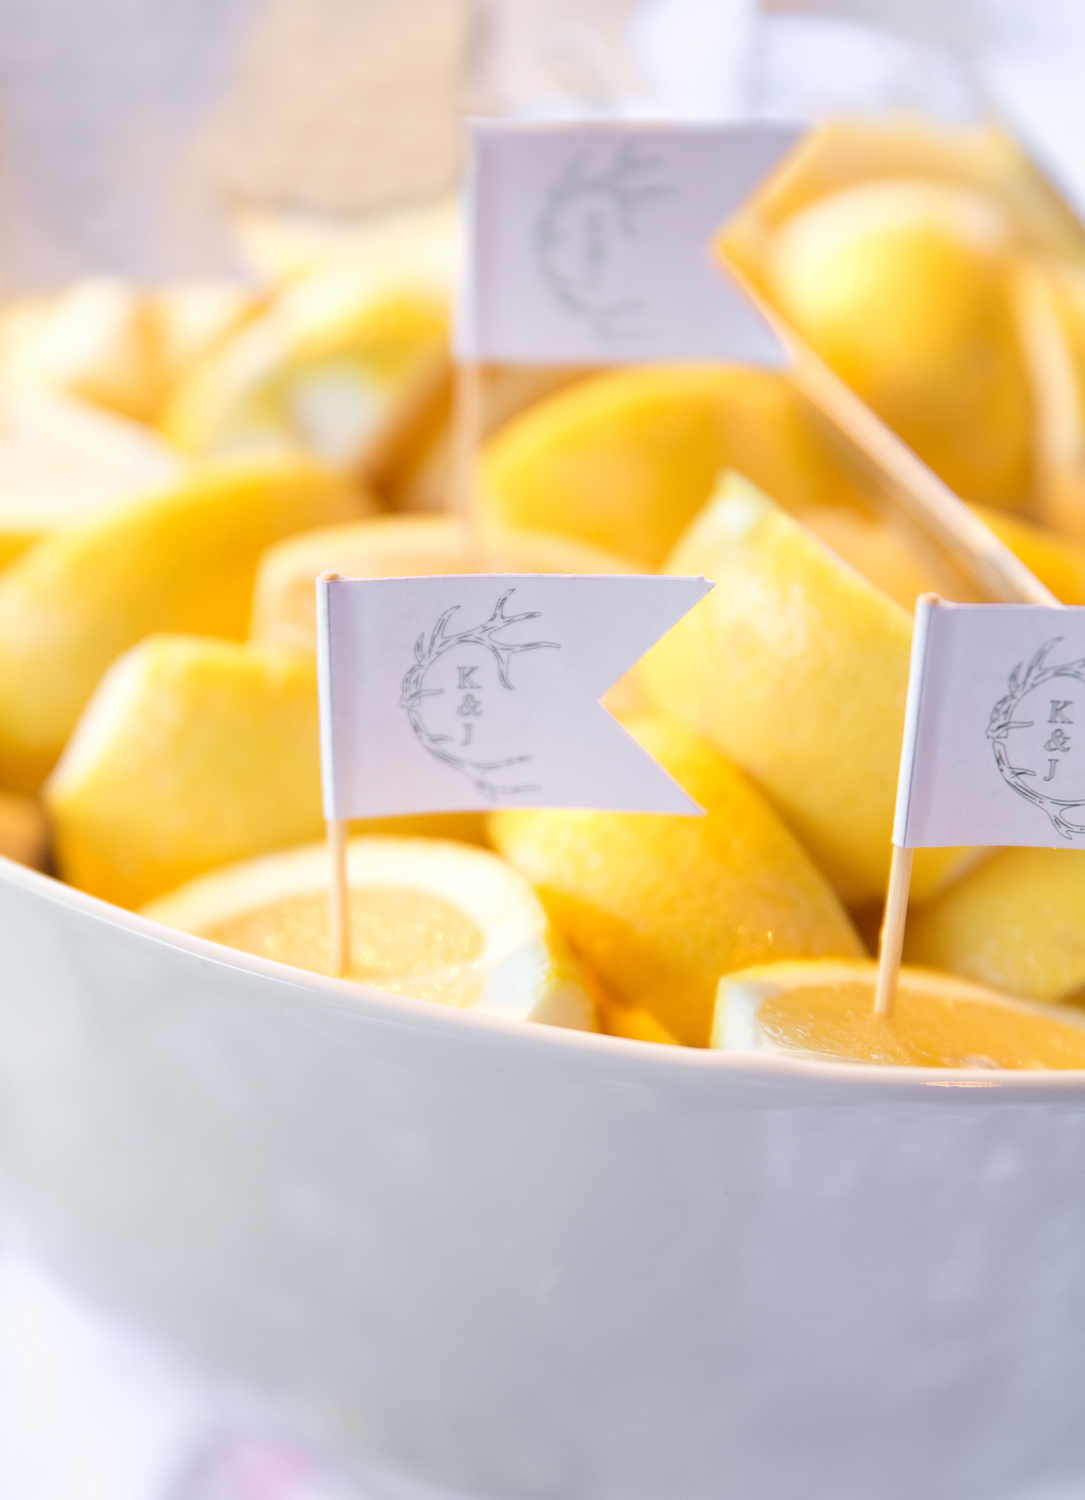 Lemon wedges with monogrammed toothpick flags